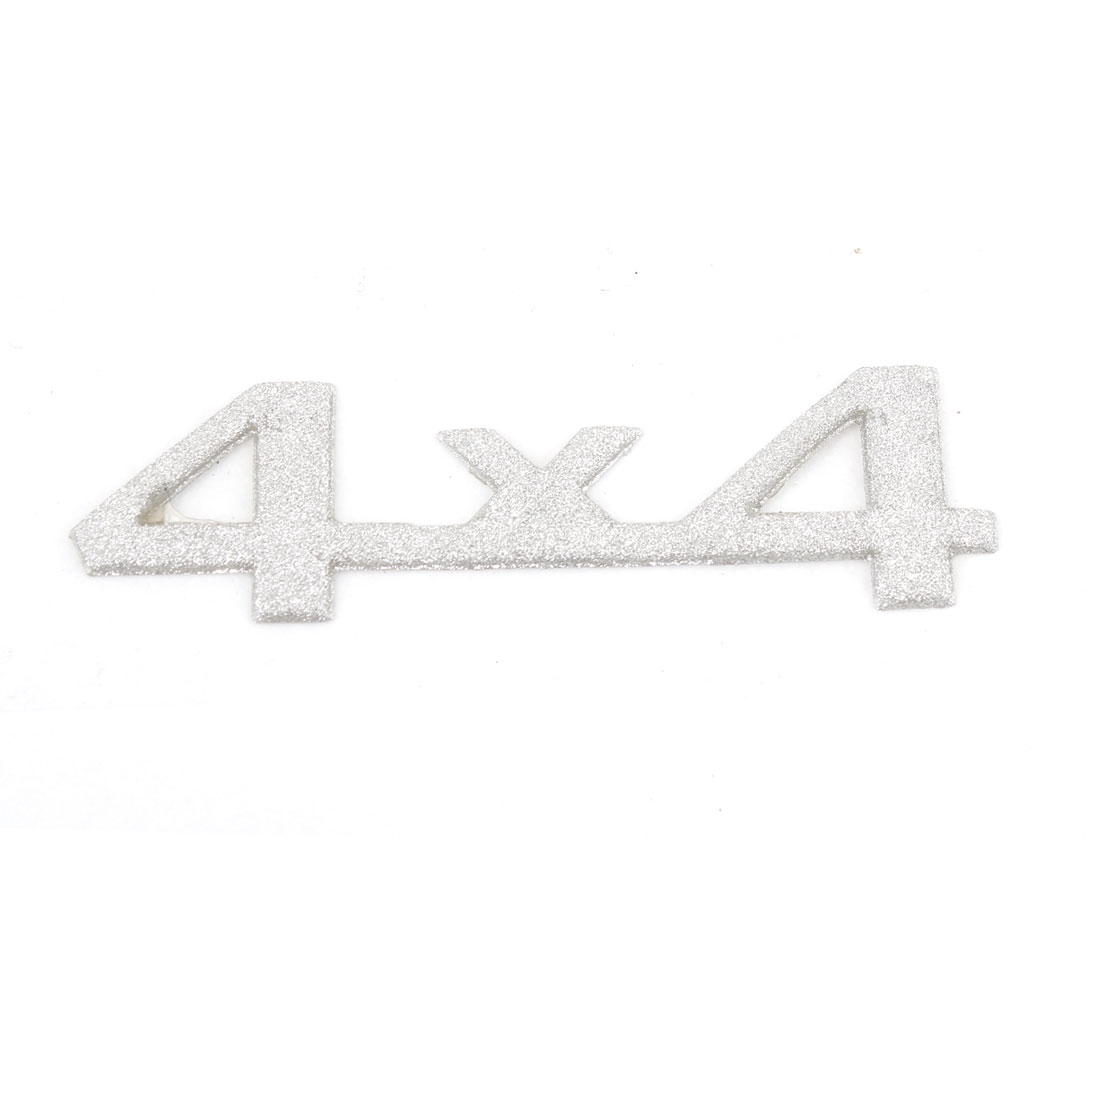 Silver Tone 4X4 Number Shaped Self Adhesive Car Badge Sticker